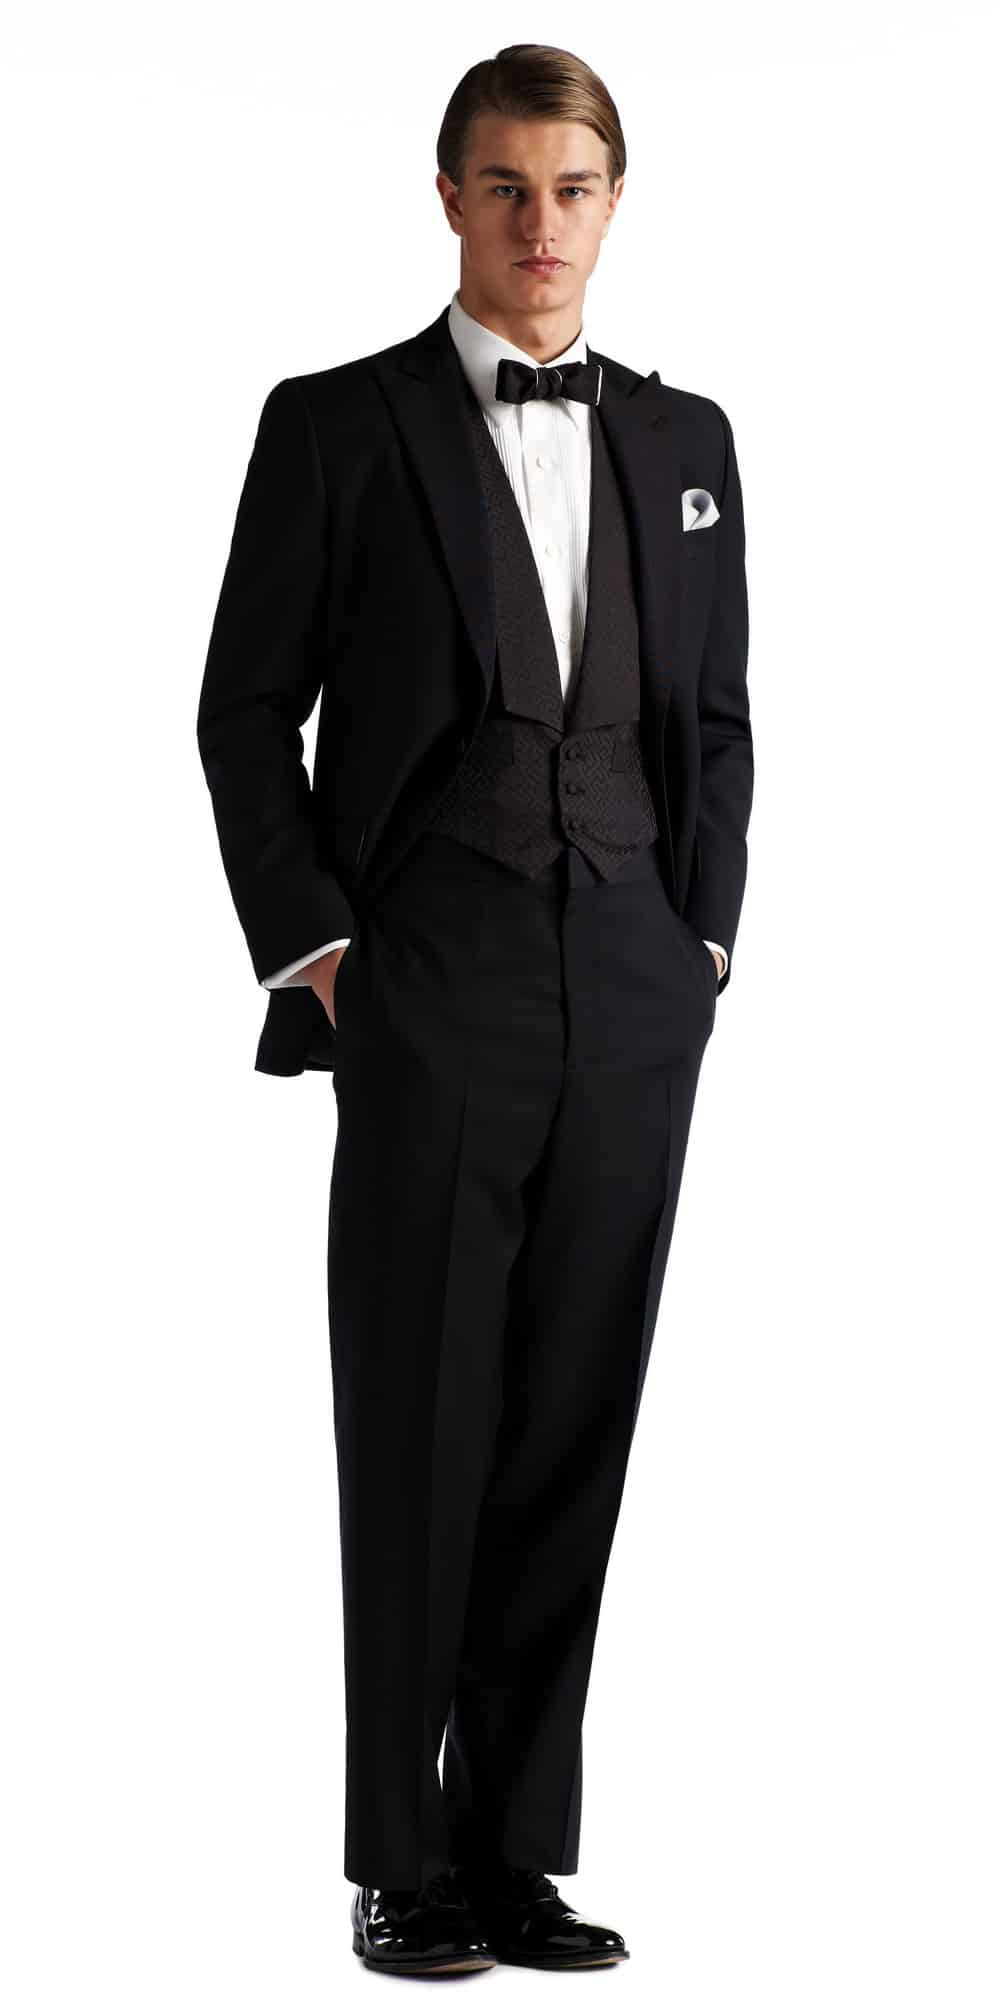 19 Best images about 1920's Men's fashion on Pinterest ... |The Great Gatsby Fashion Men